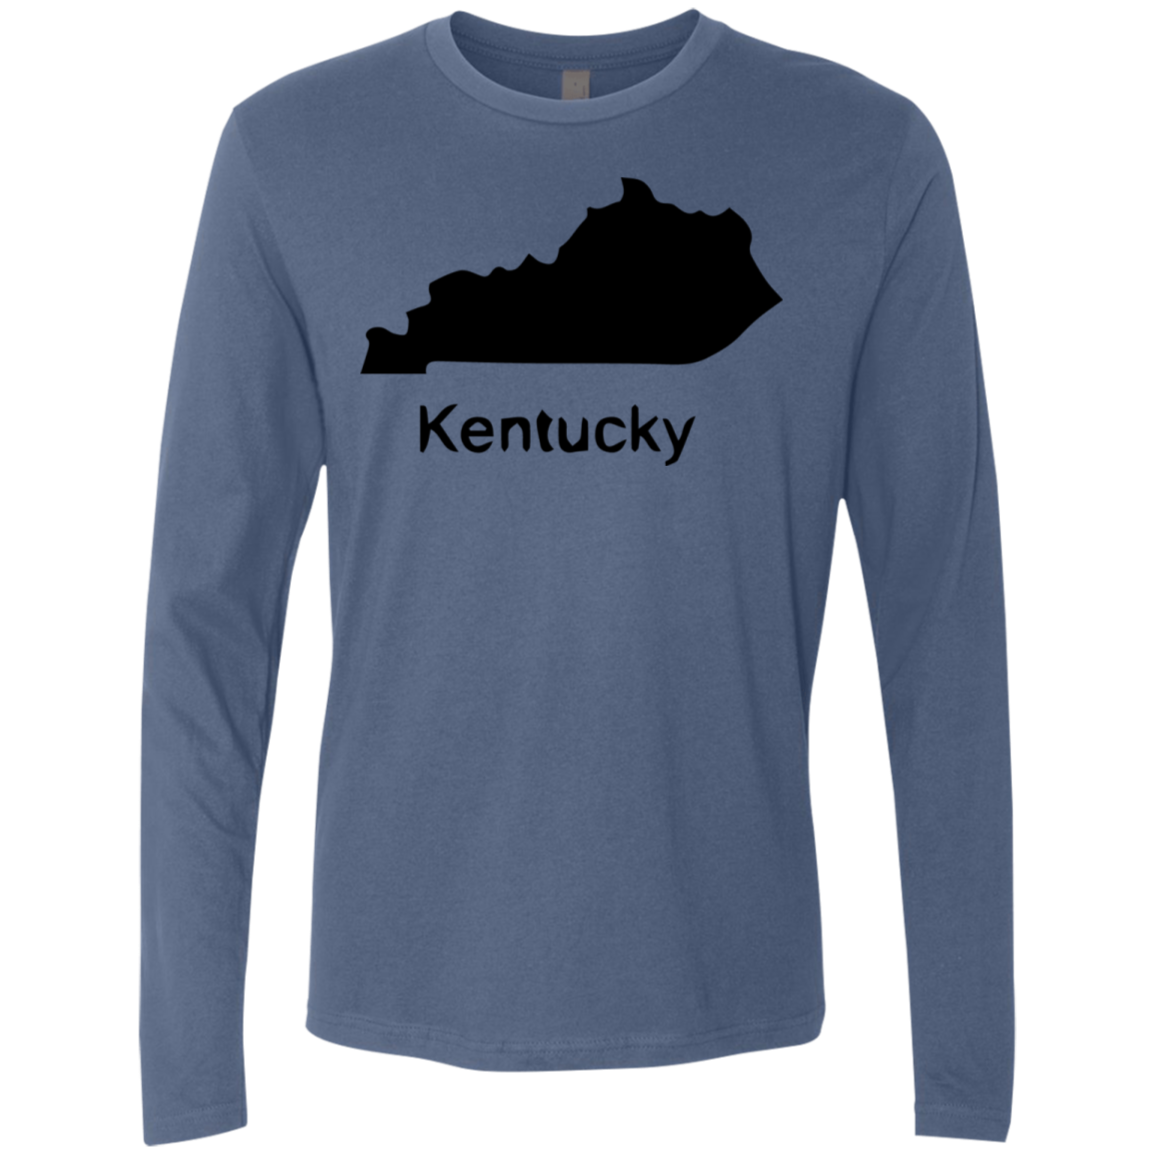 Kentucky Black Men's Long Sleeve Tee